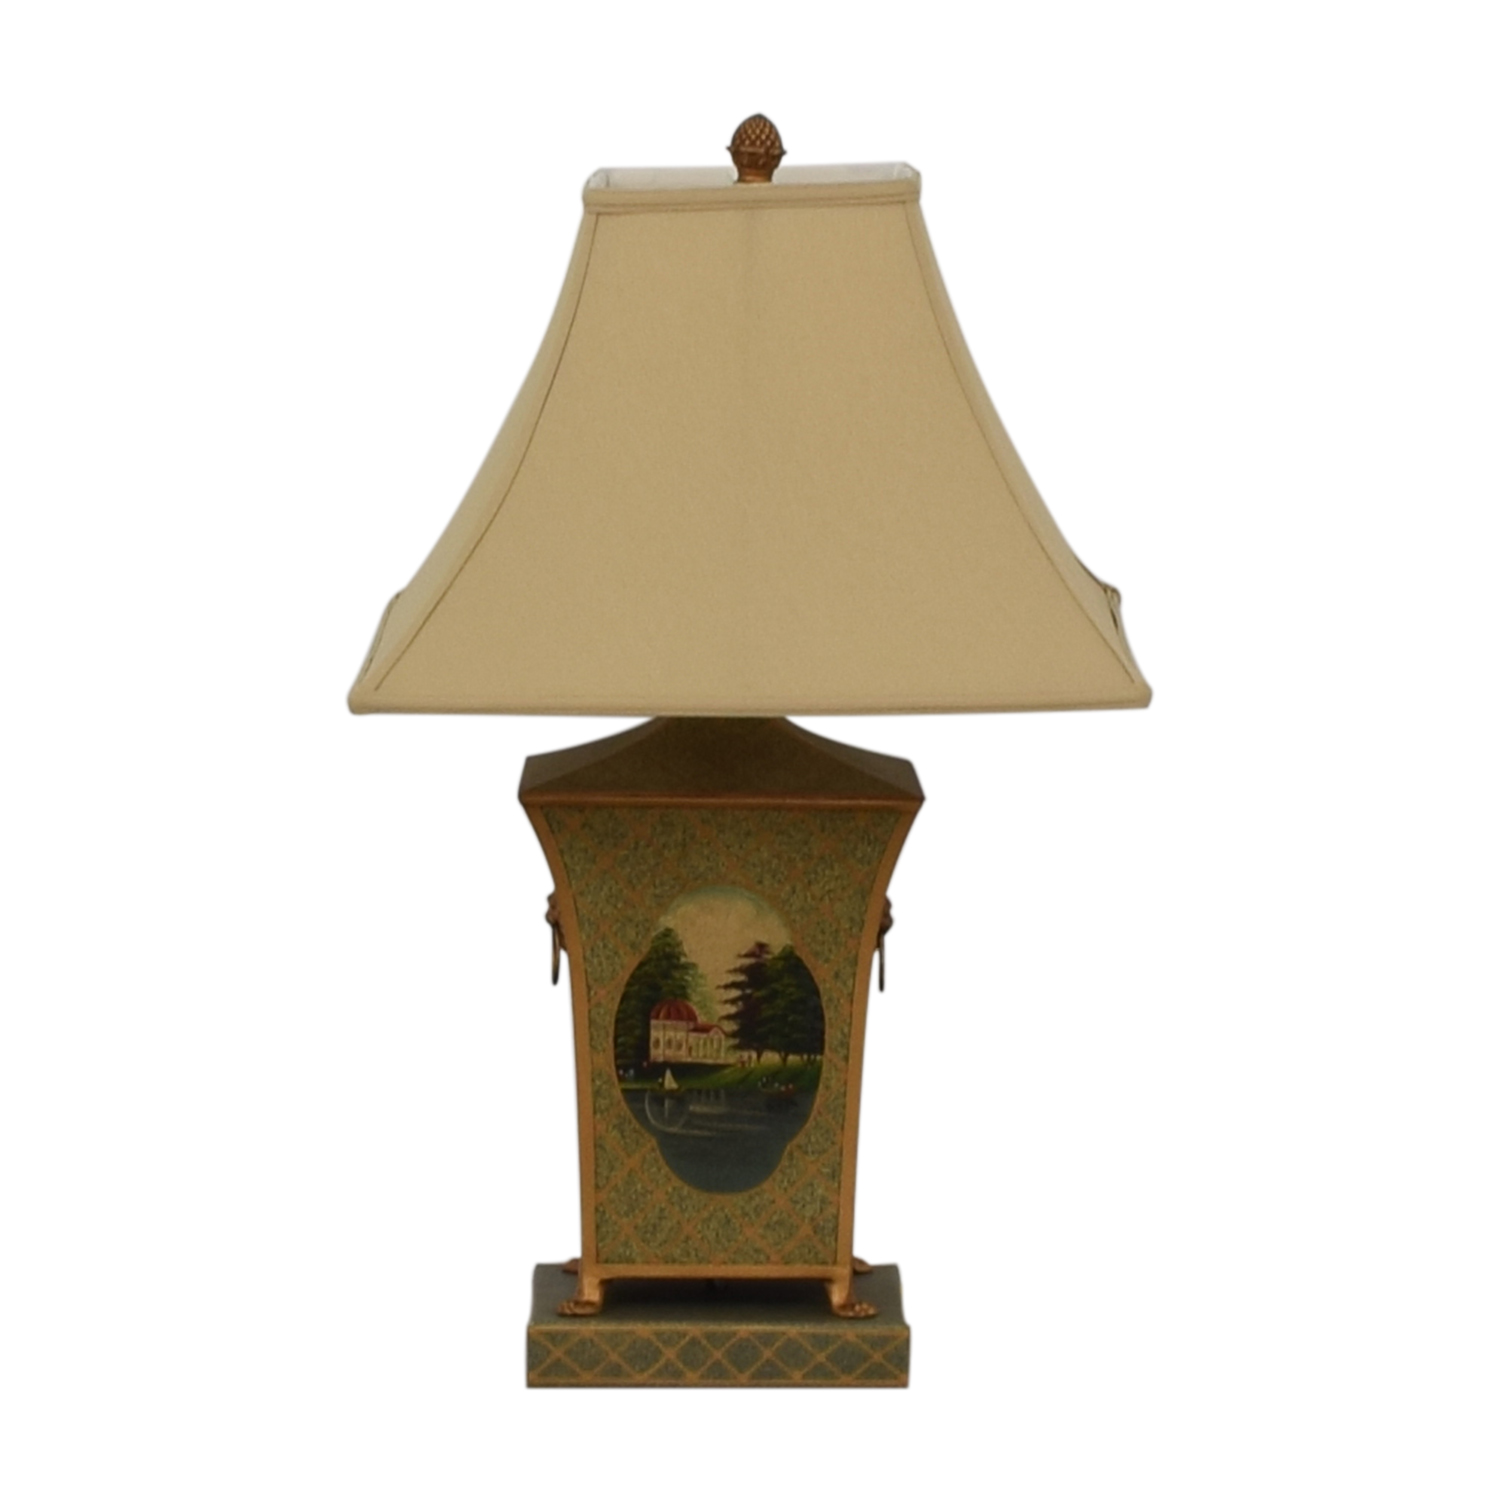 Decorative Crafts Decorative Crafts Table Lamp Lamps